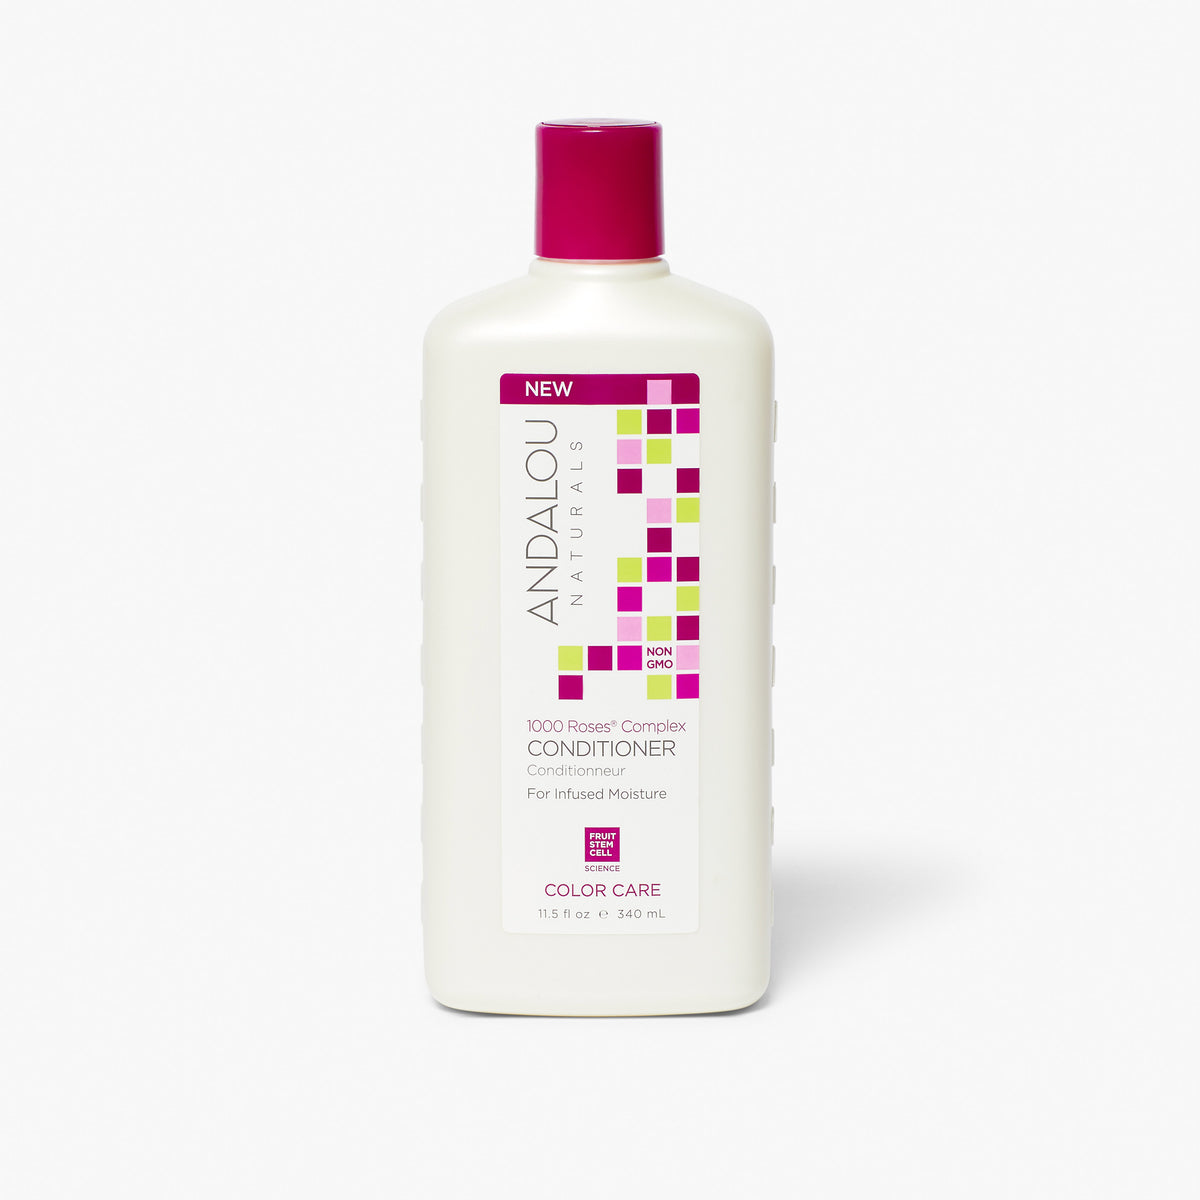 1000 Roses Complex Colour Care Conditioner